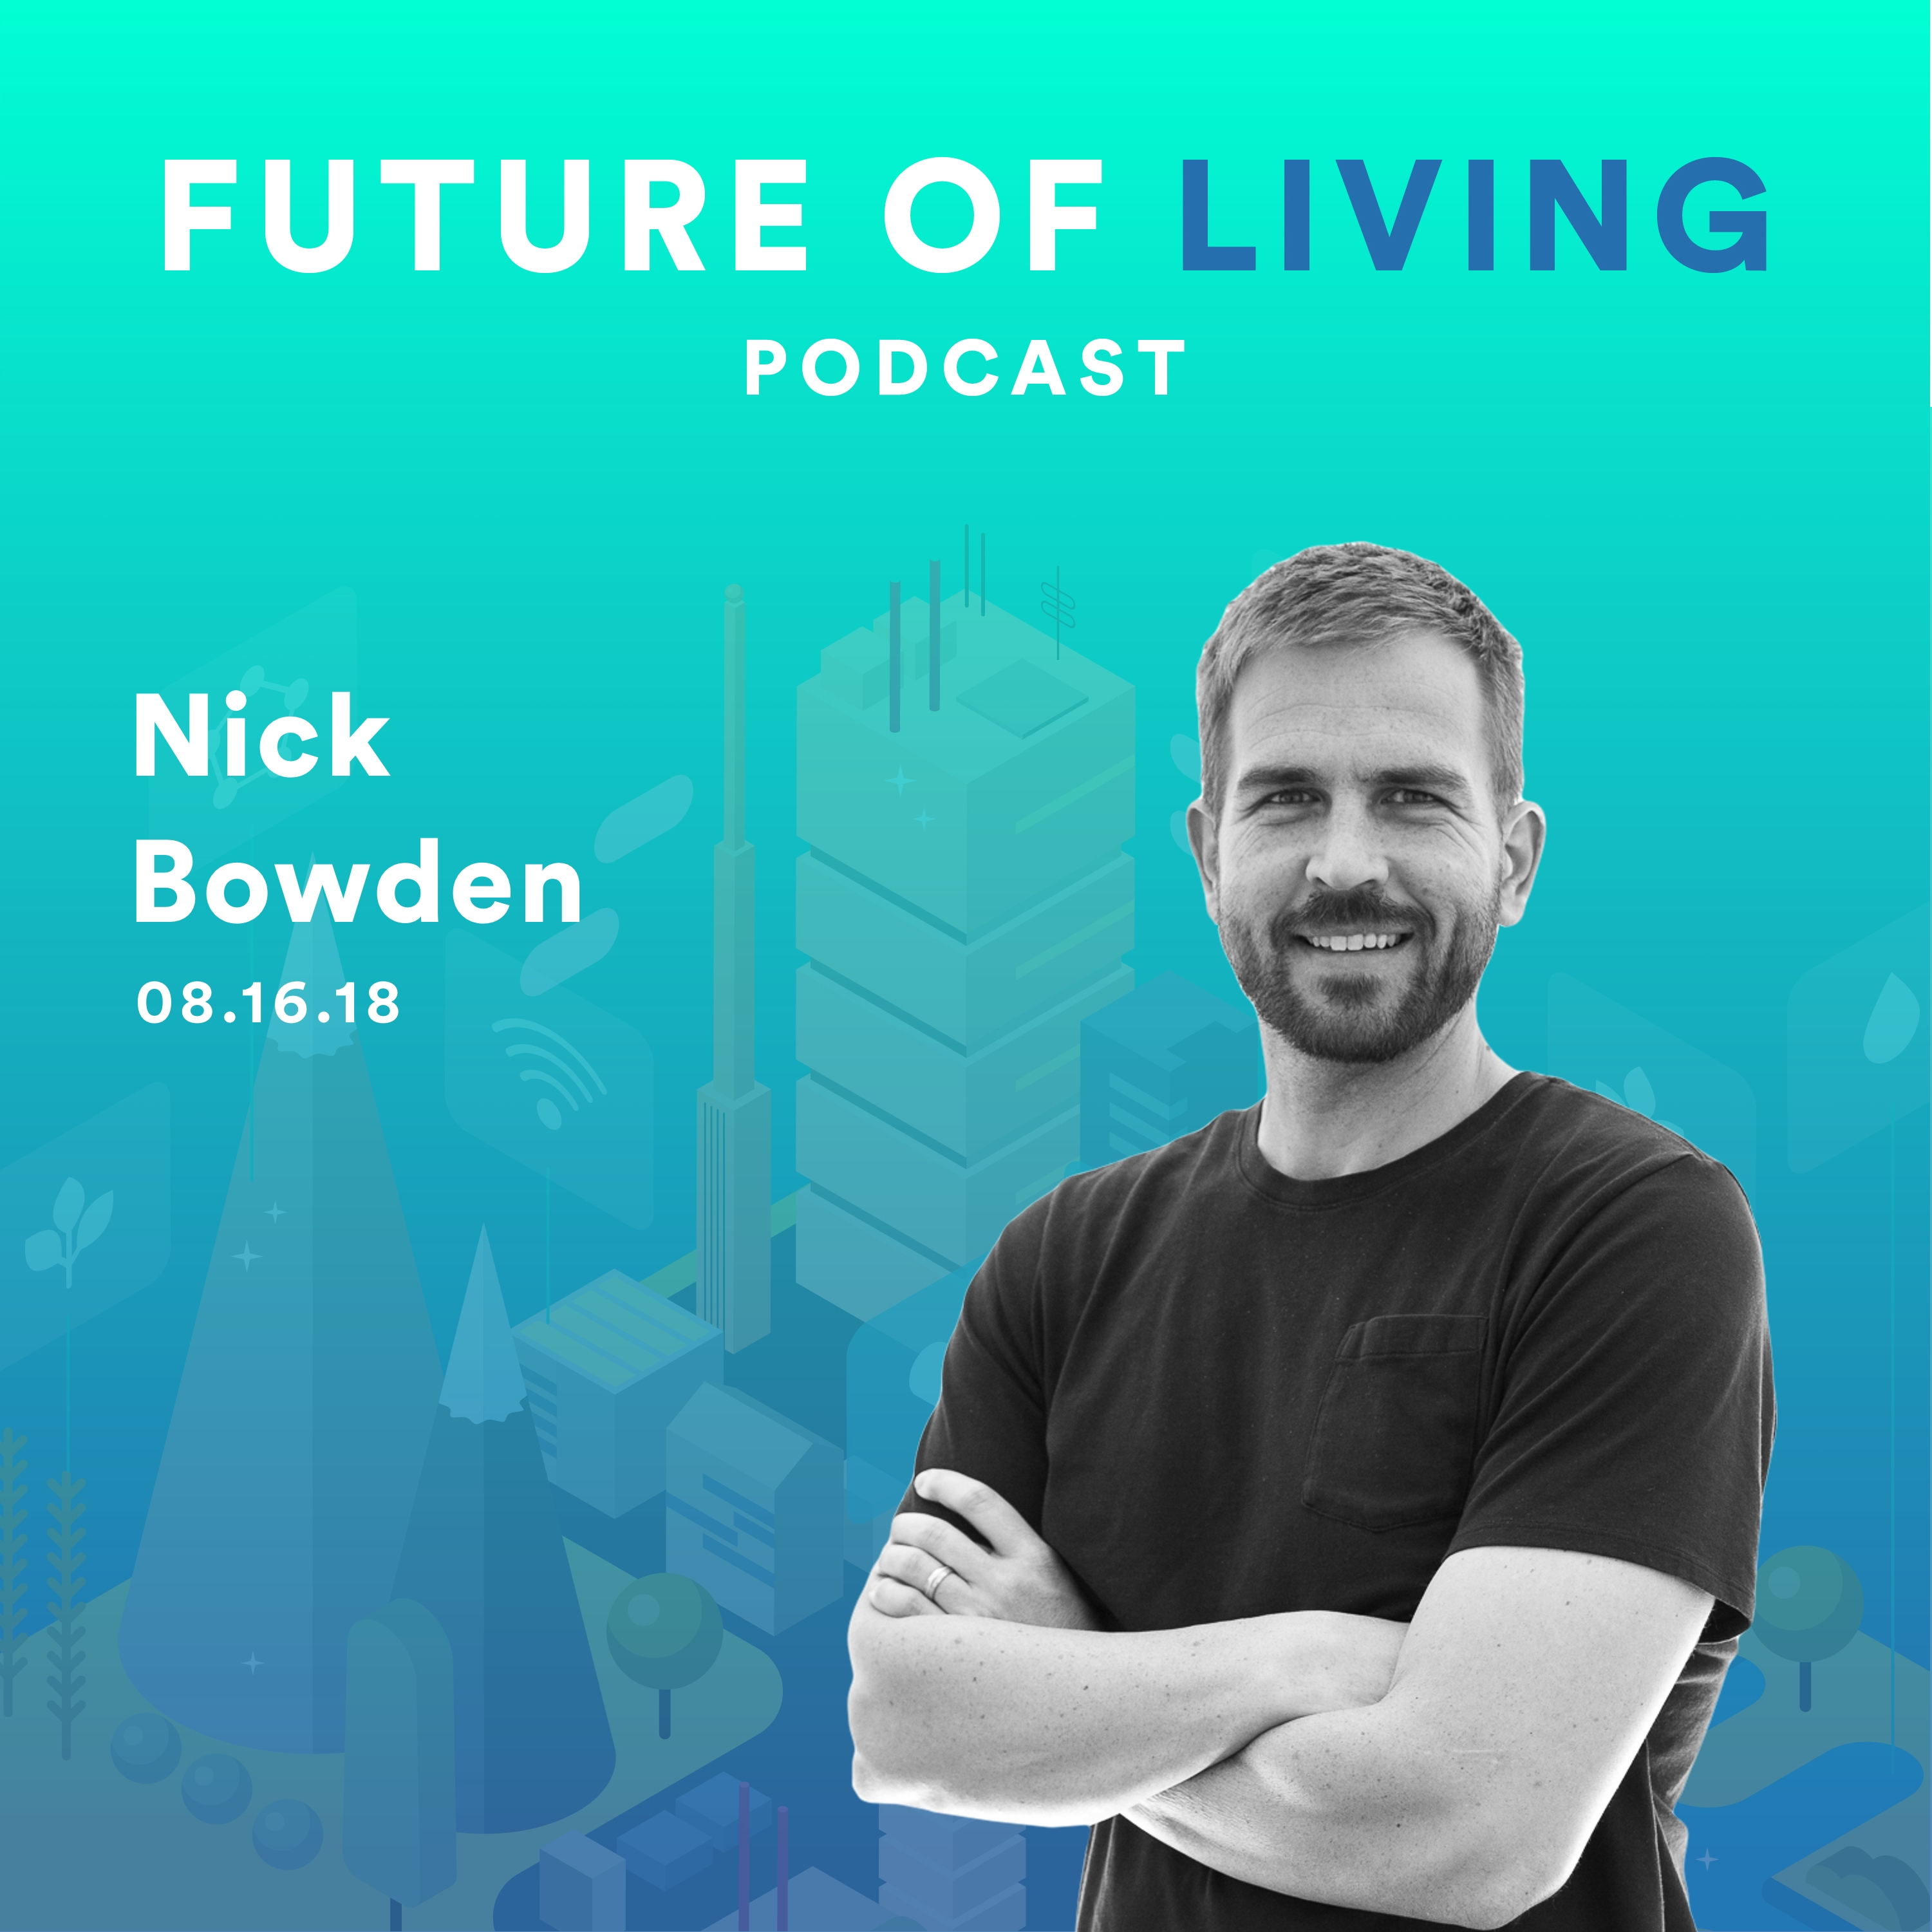 Nick Bowden episode cover